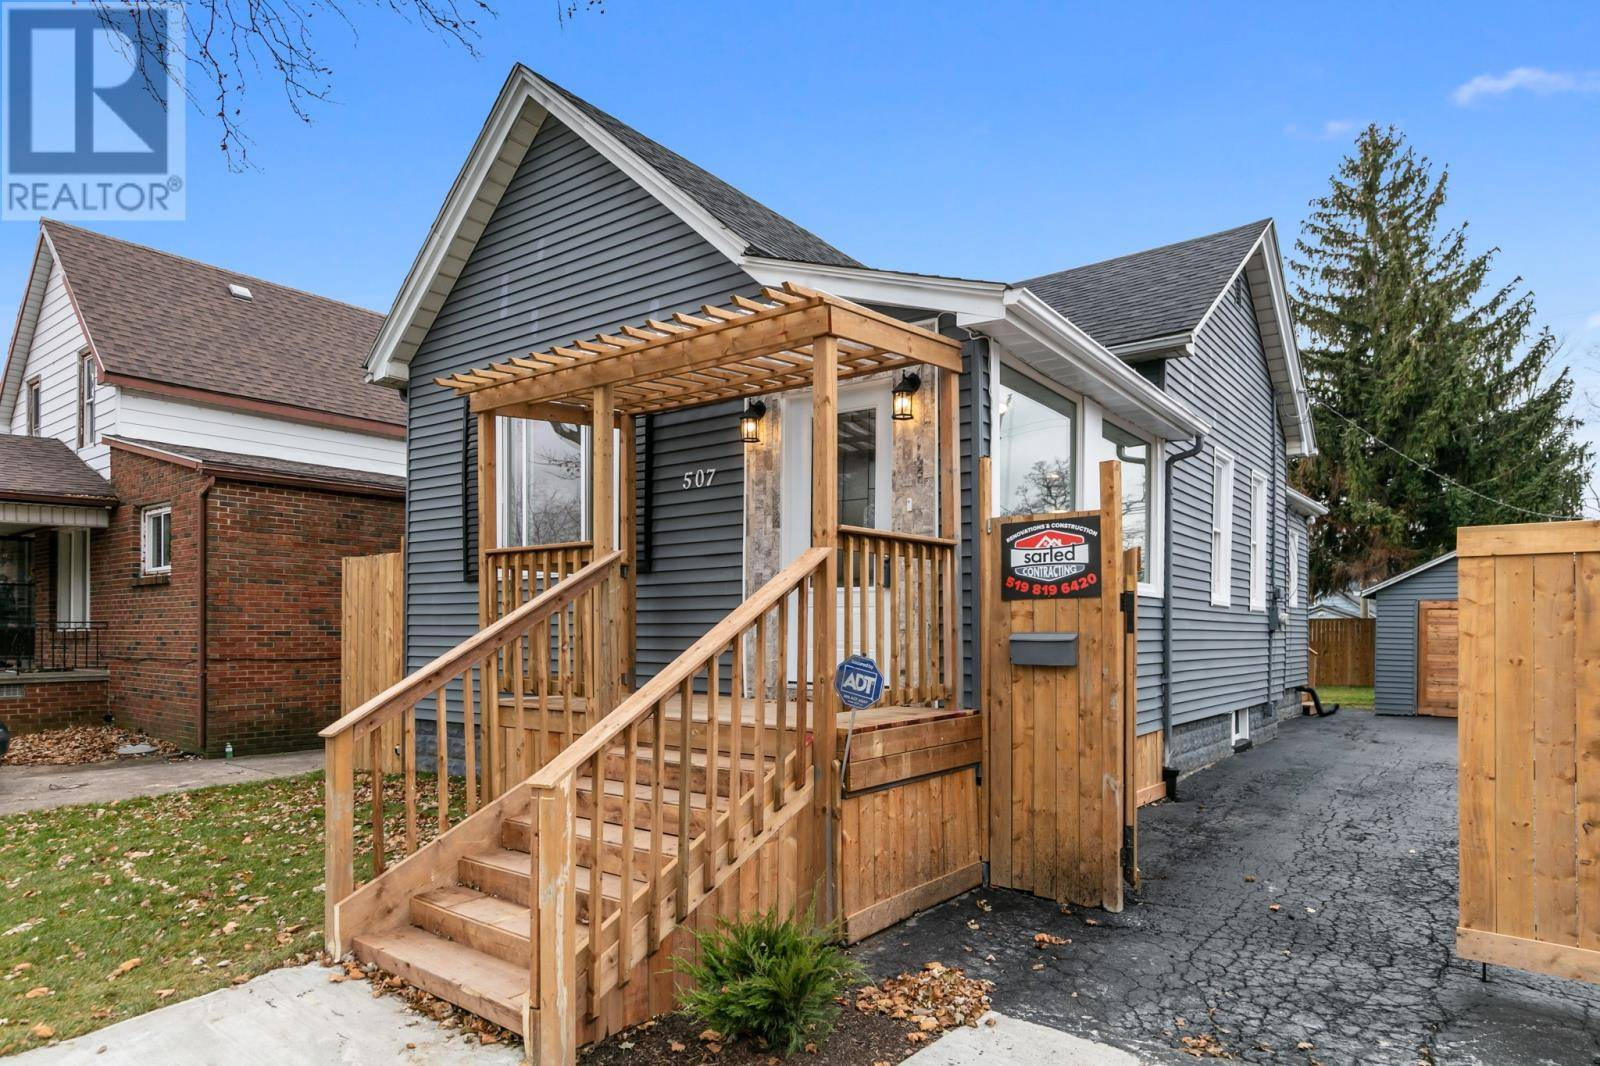 House for sale at 507 Cameron Ave Windsor Ontario - MLS: 19028837